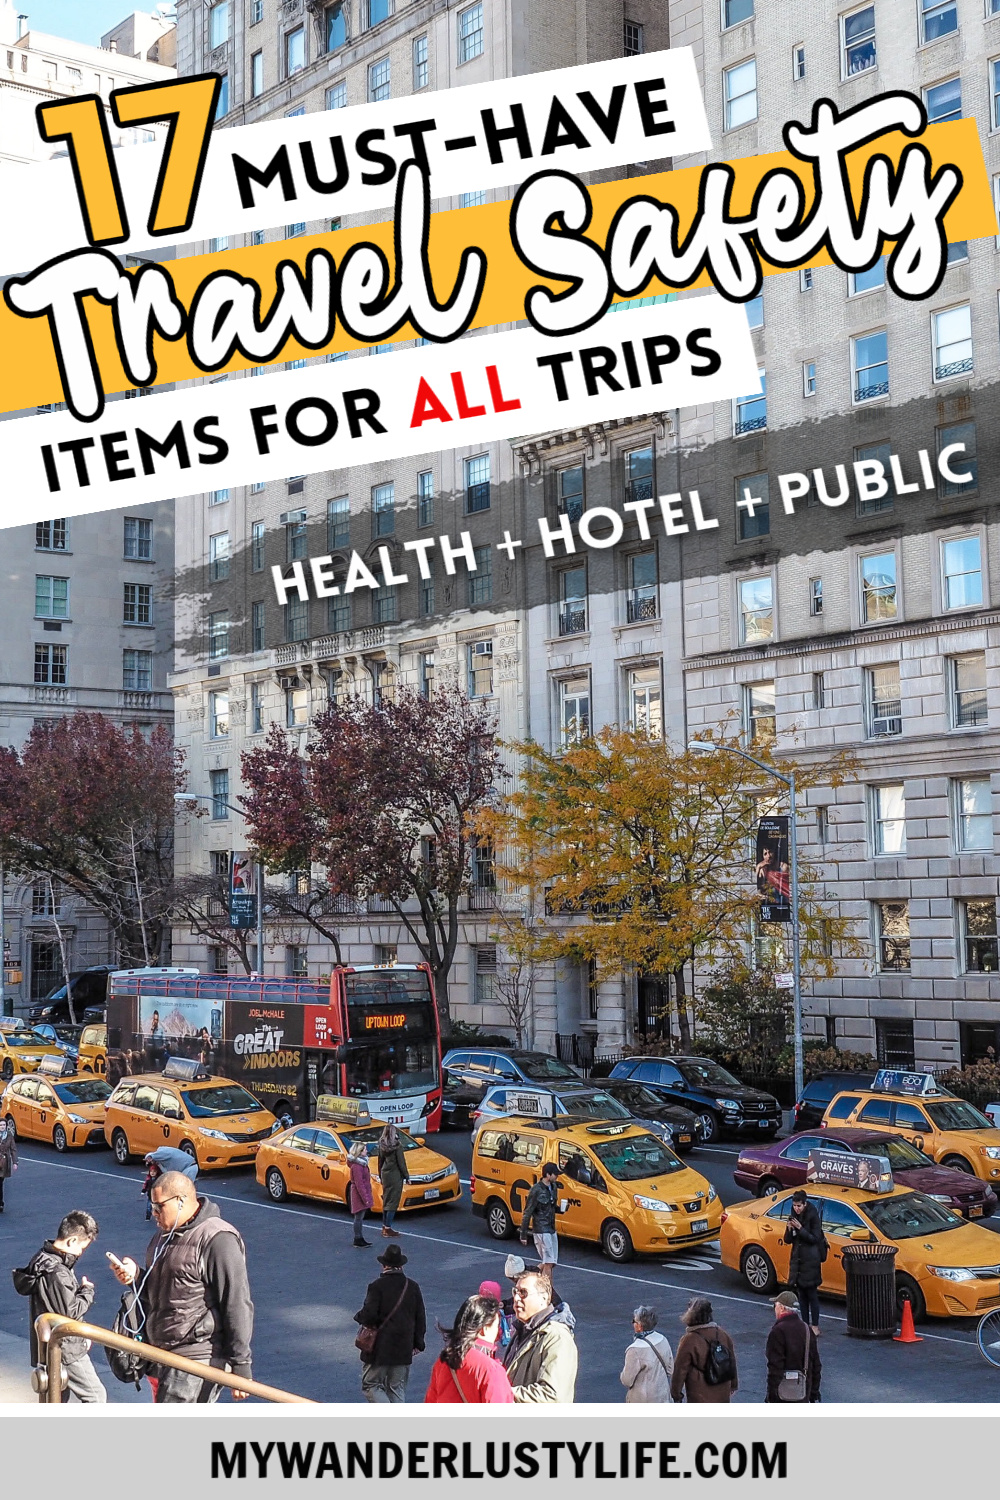 Must-Have Travel Safety Items: 17 Essentials for Your Travel Safety Kit | Travel health and safety | solo female travel safety #mywanderlustylife #travelsafety #pickpocket #travelhealth #publicsafety